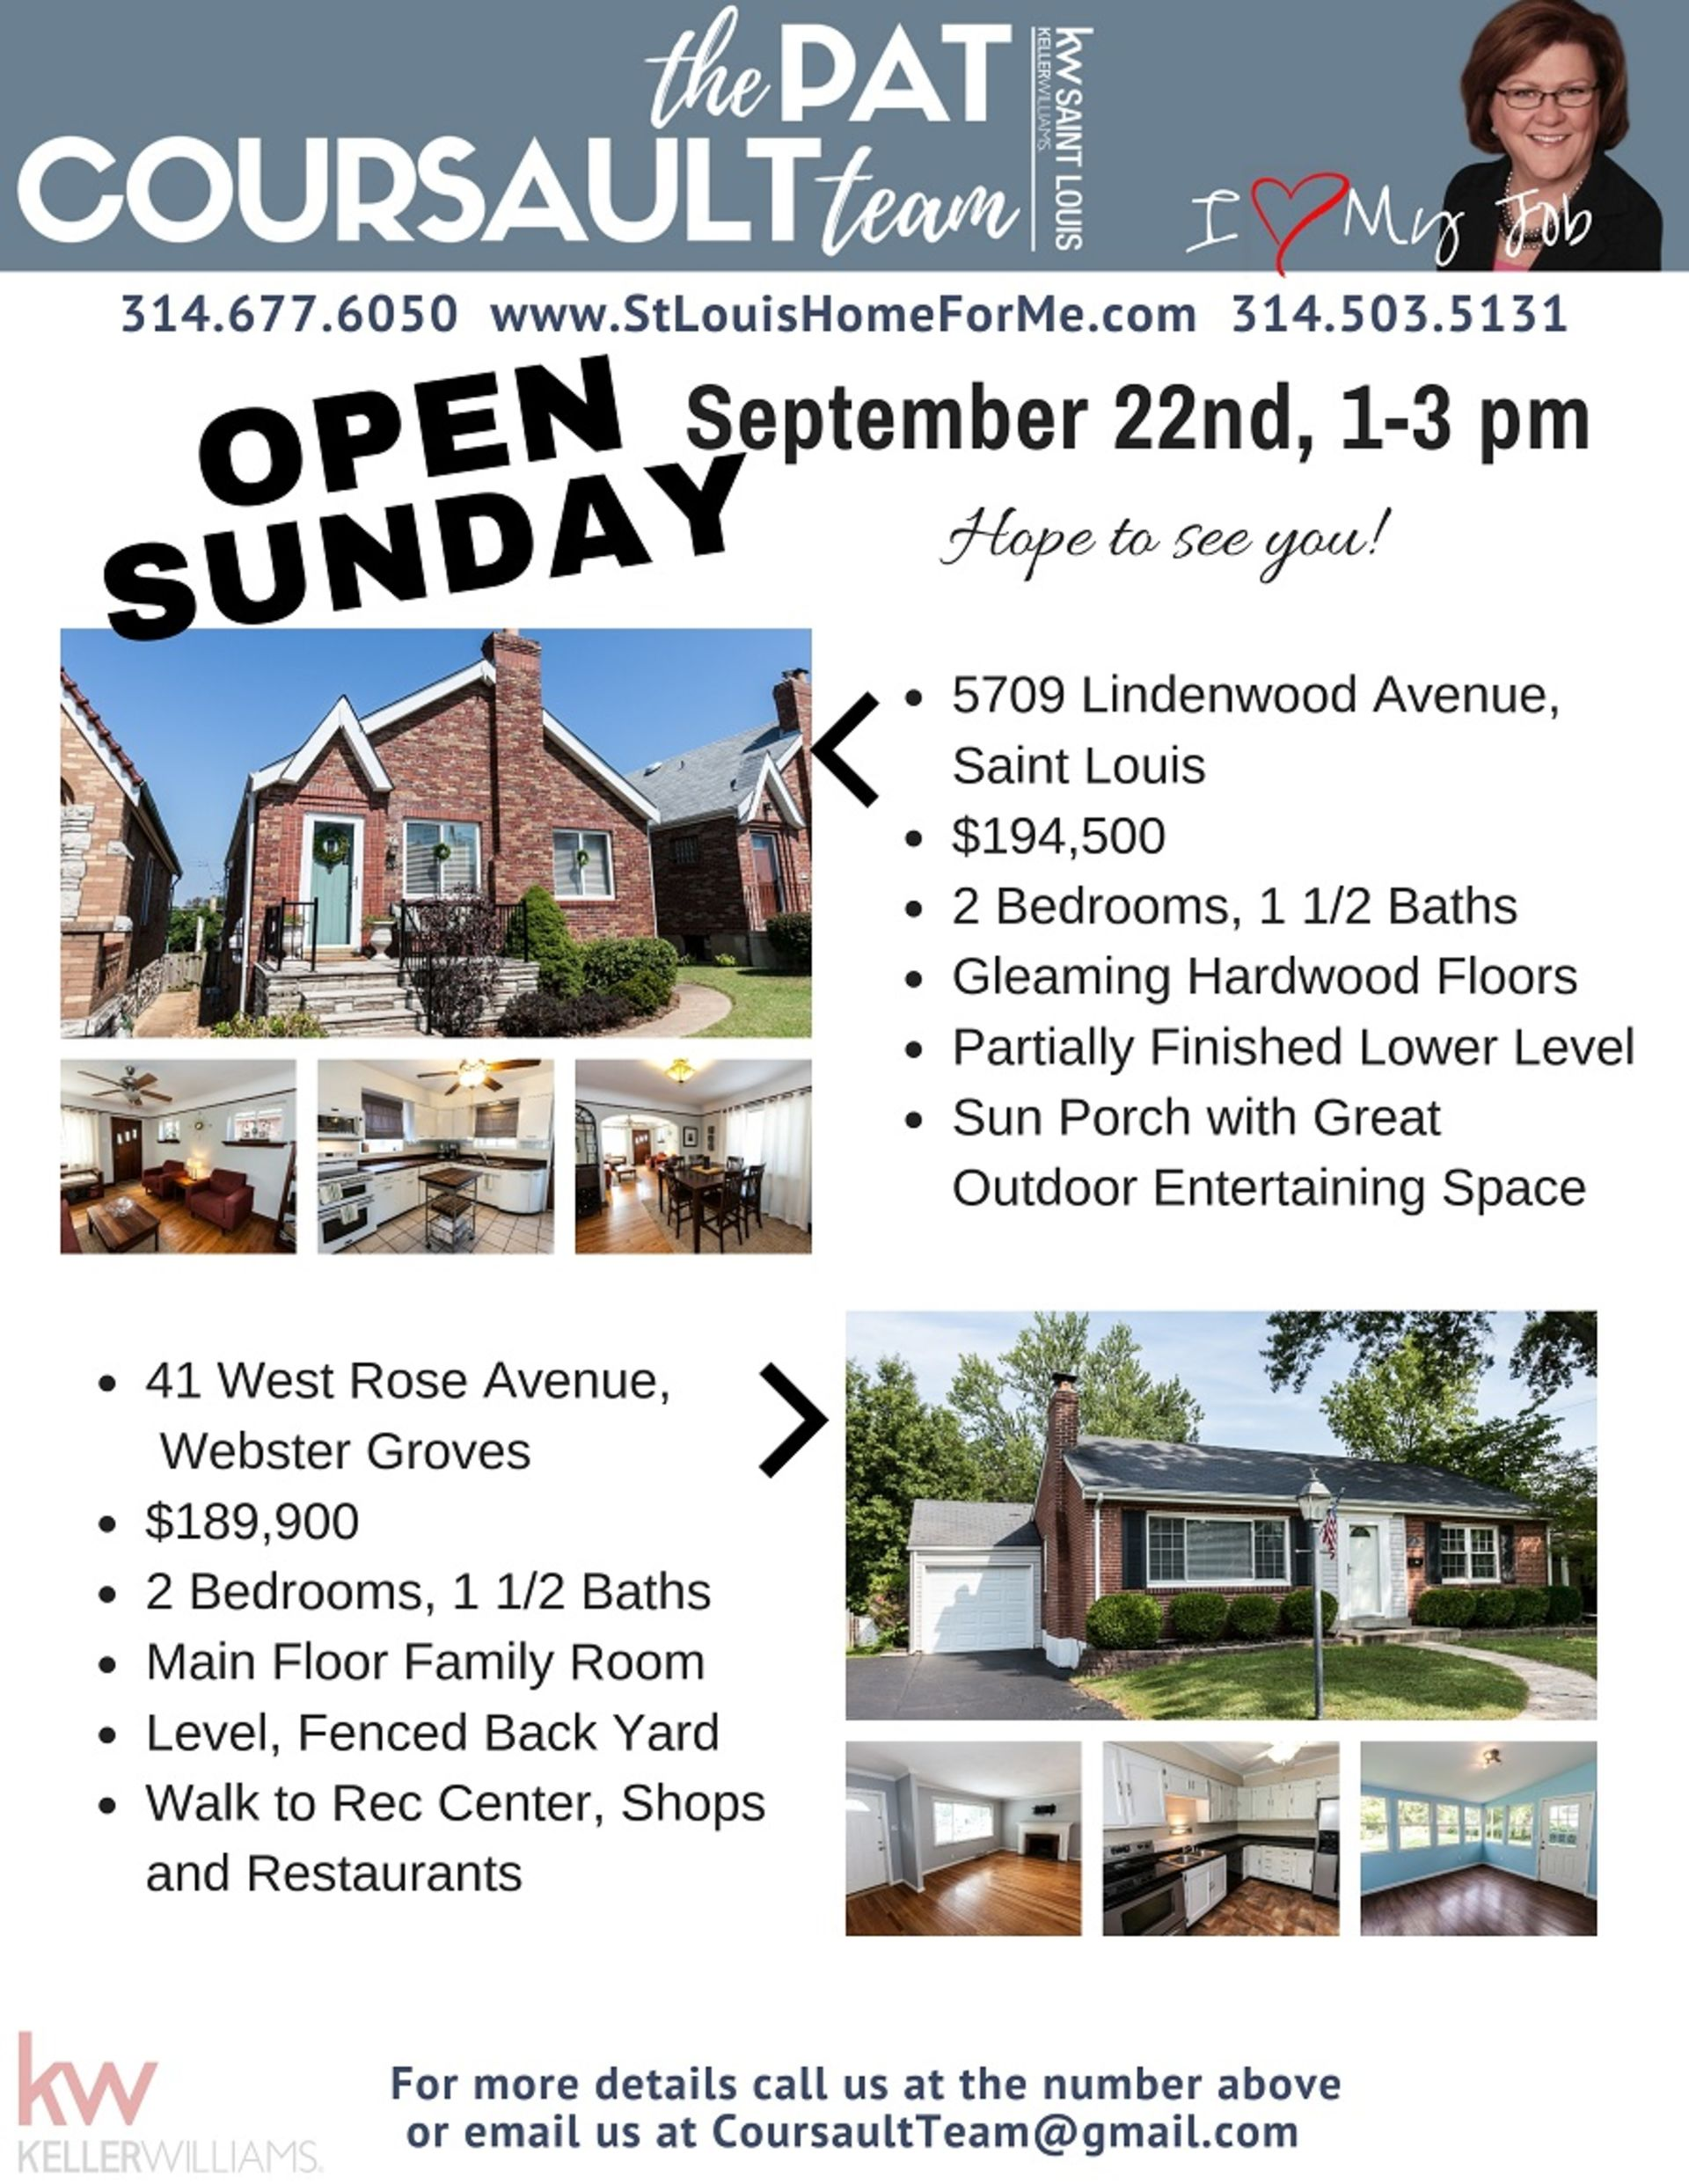 Sunday Open House, September 22nd, 1-3 pm